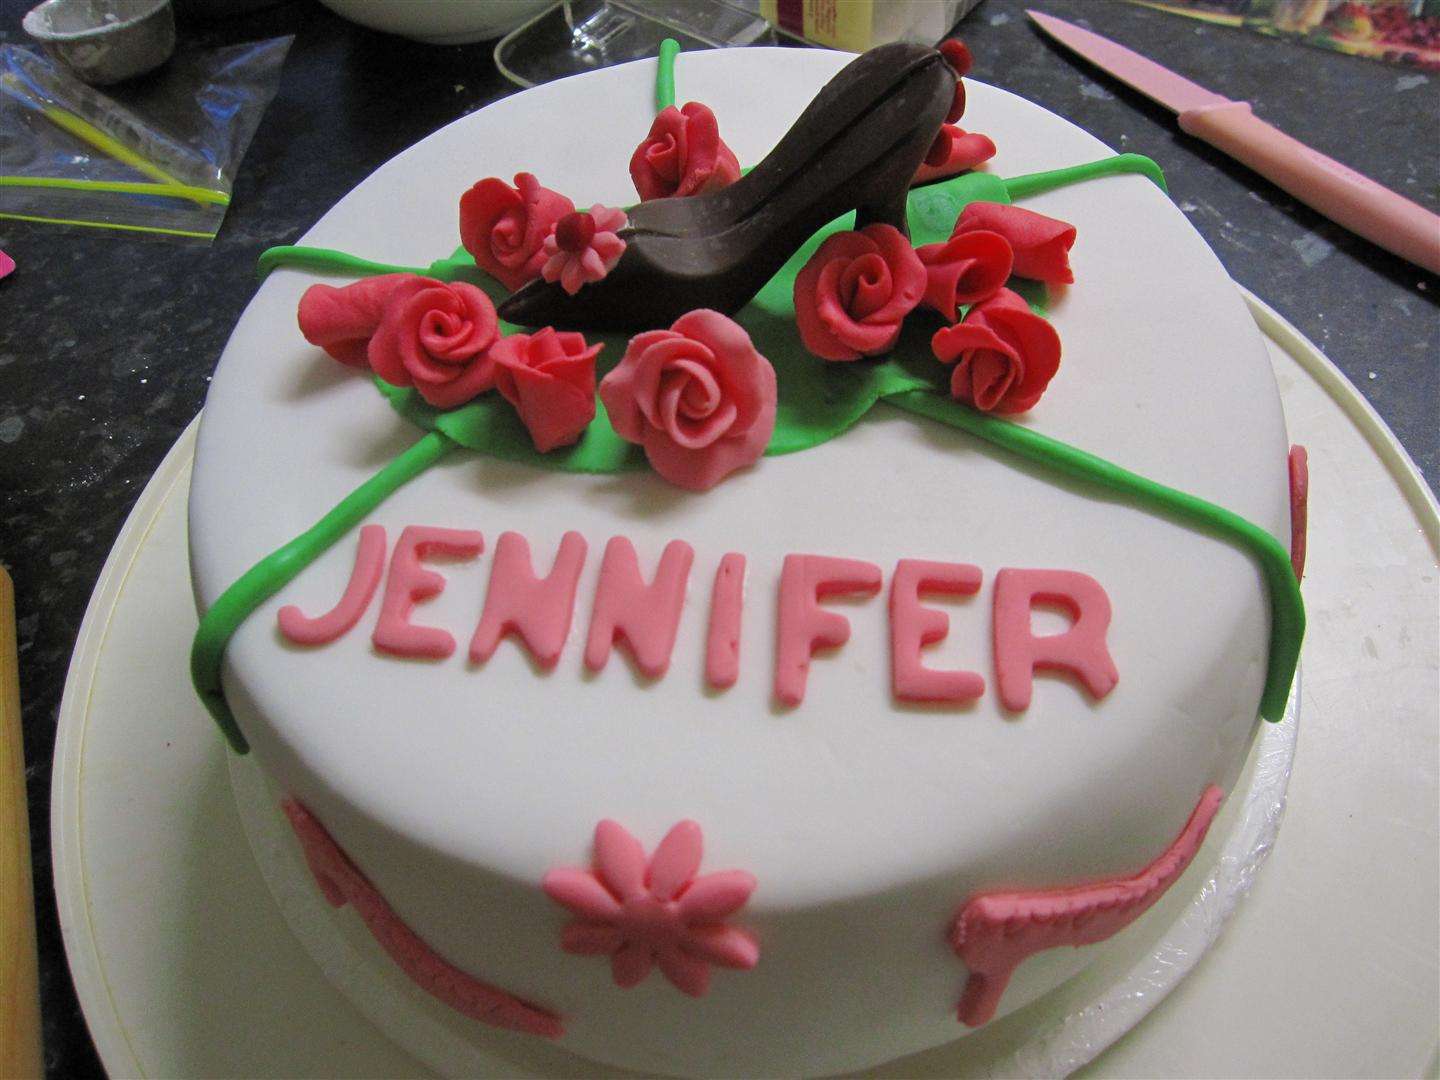 happy birthday jennifer cakes